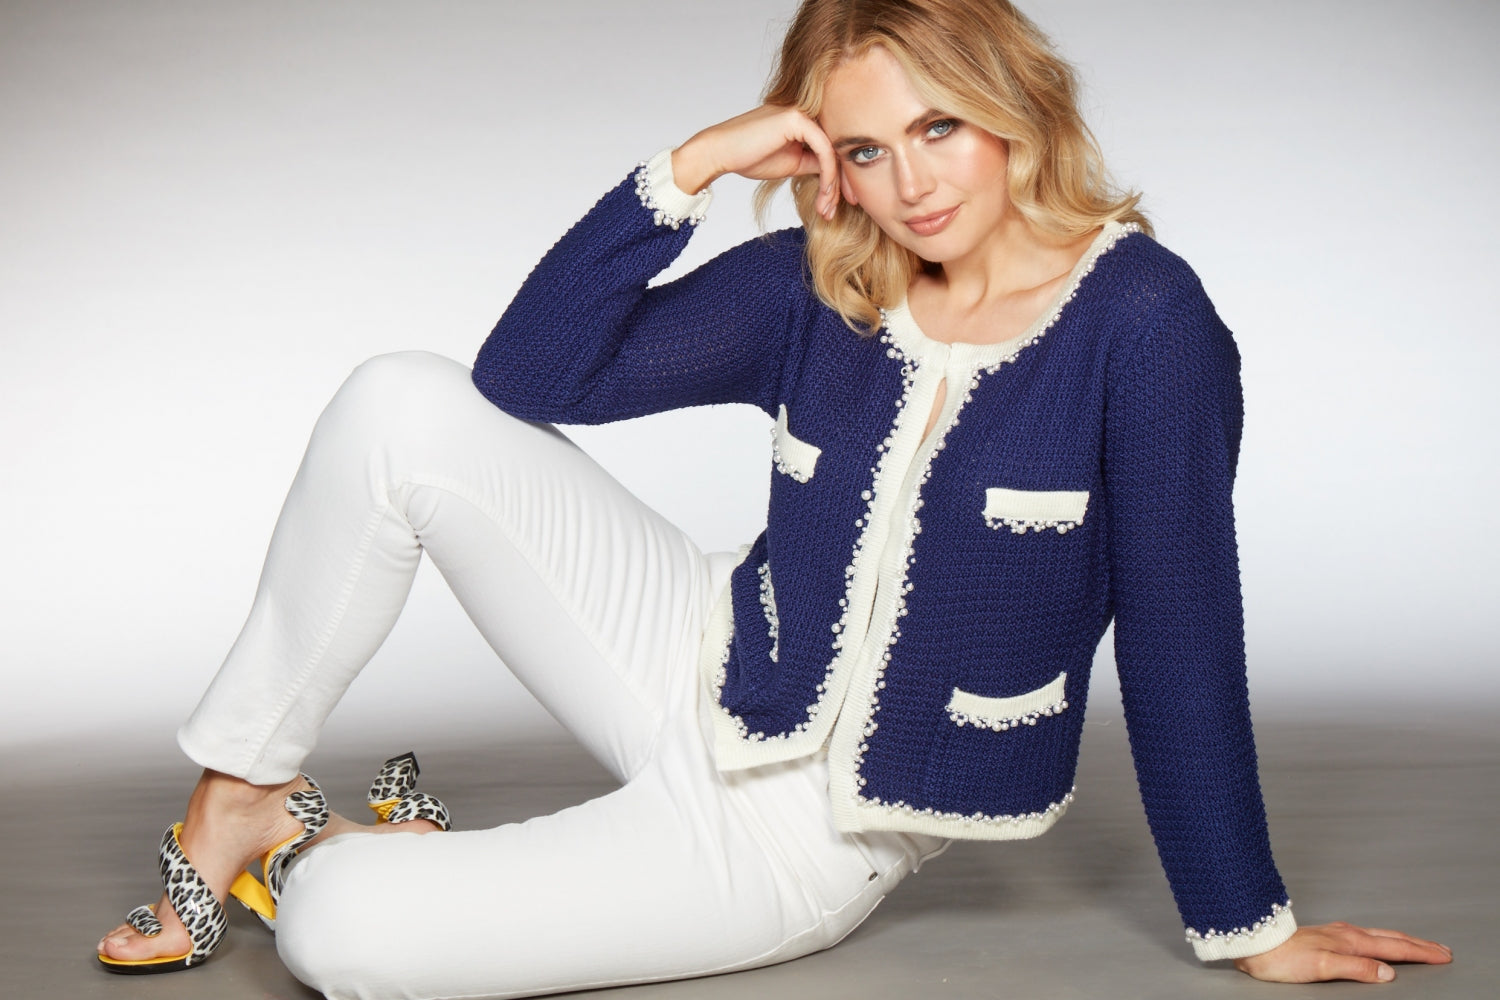 Malibu White Womens skinny cut Jeans styled with Coco Chanel inspired little french knitted jacket in royal blue and leopard print shoes by Julian Hakes